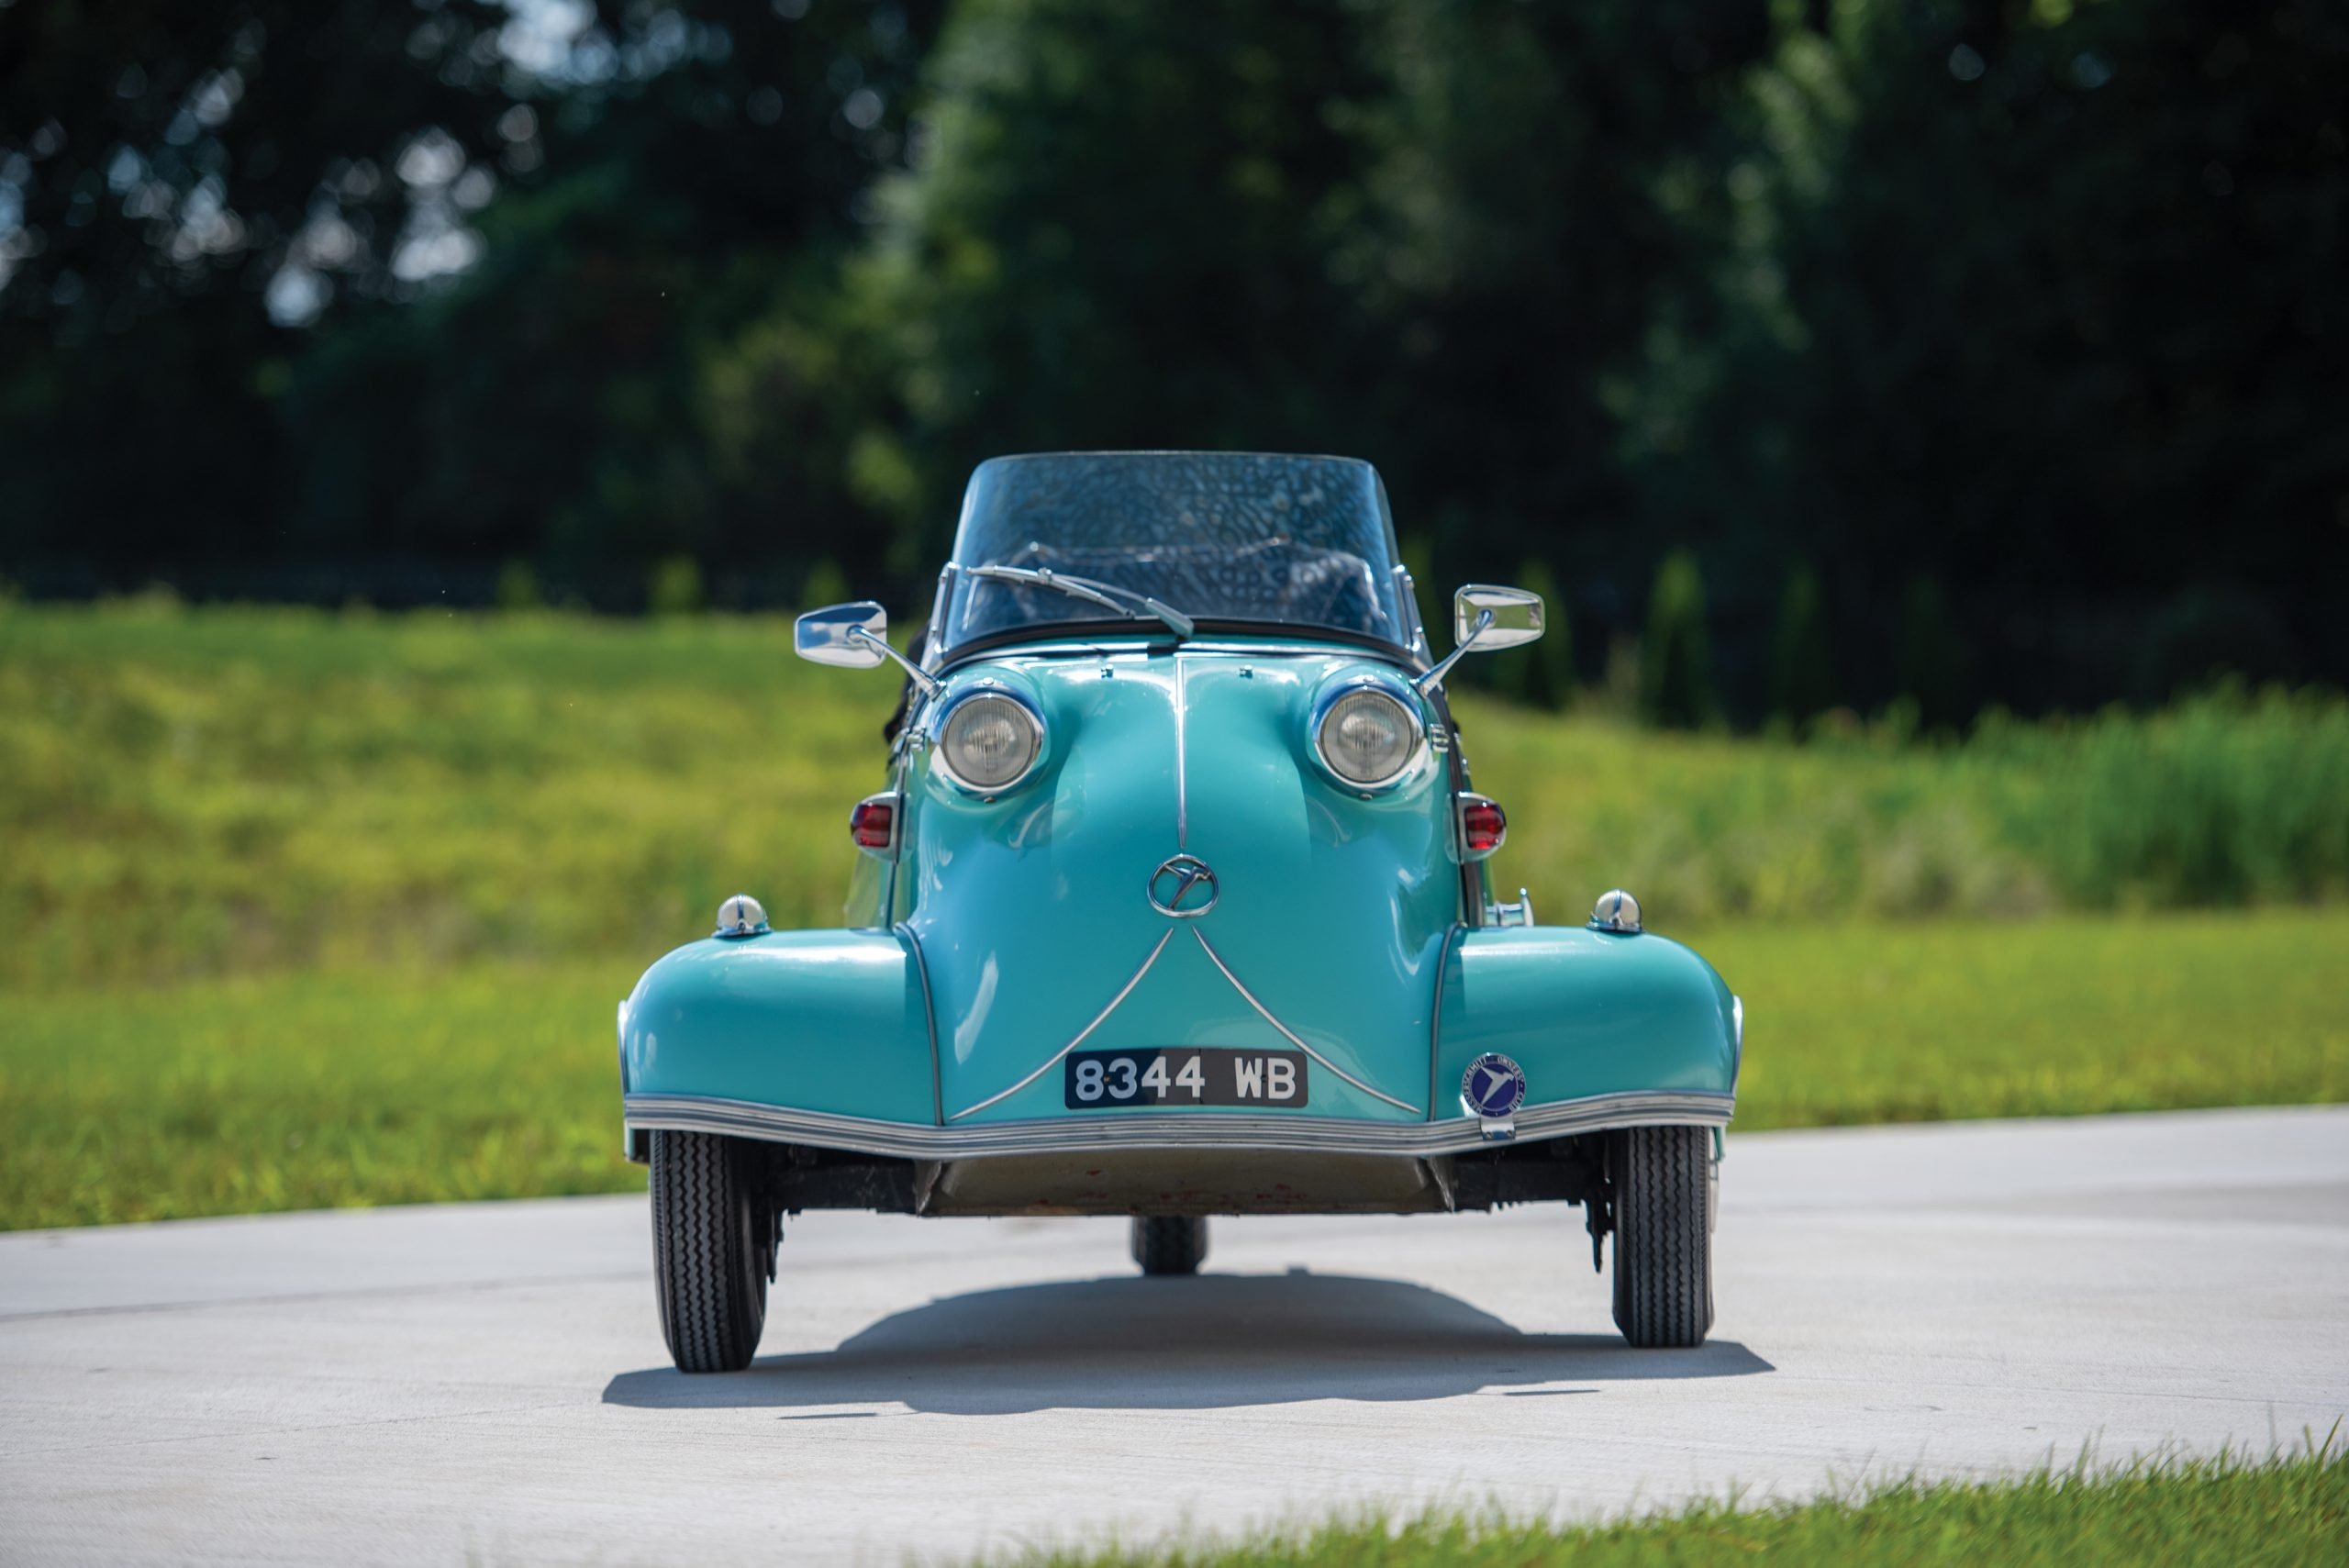 A flight of tiny Messerschmitt microcars could be yours